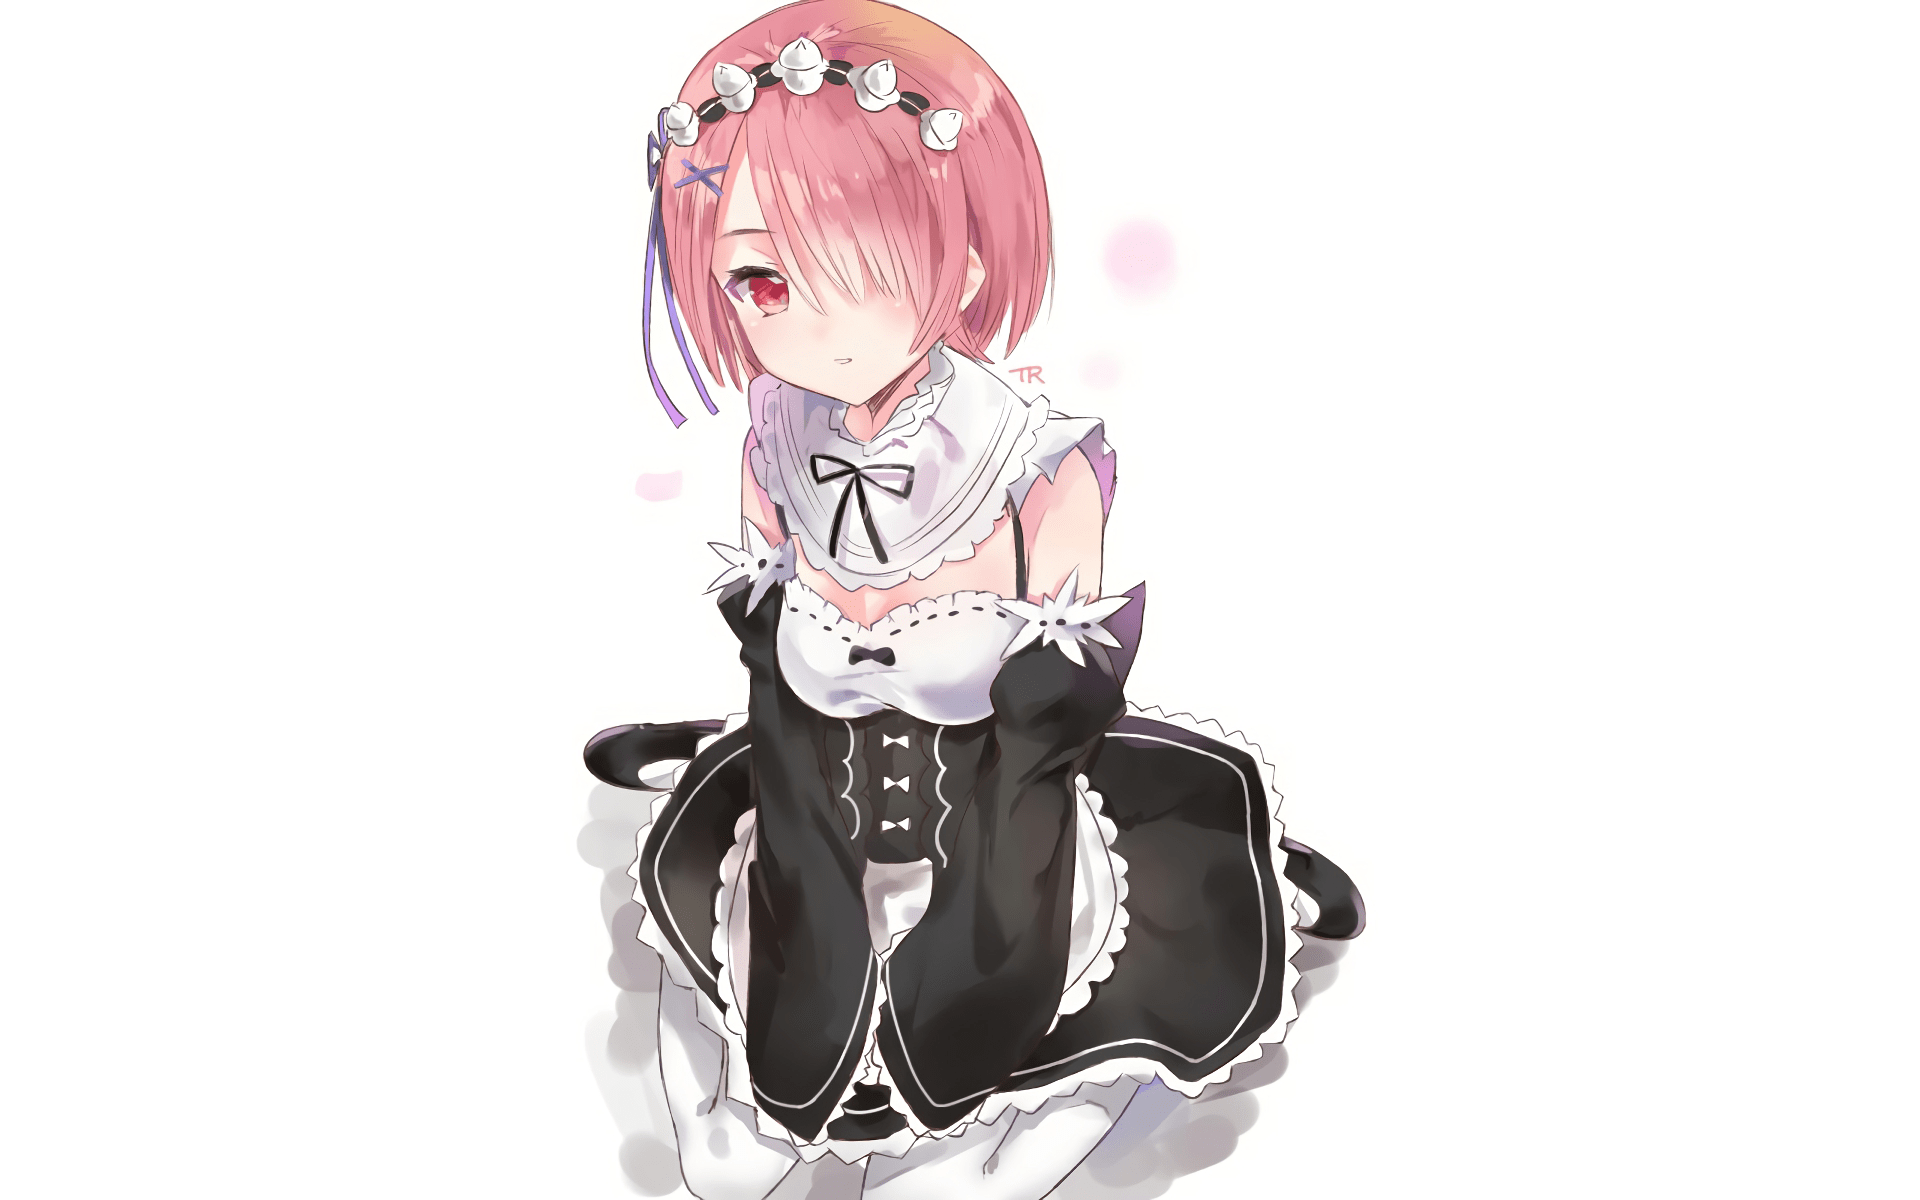 Cute Pink Wallpaper For Phone Download 1920x1200 Ram Re Zero Pink Hair Maid Clothes